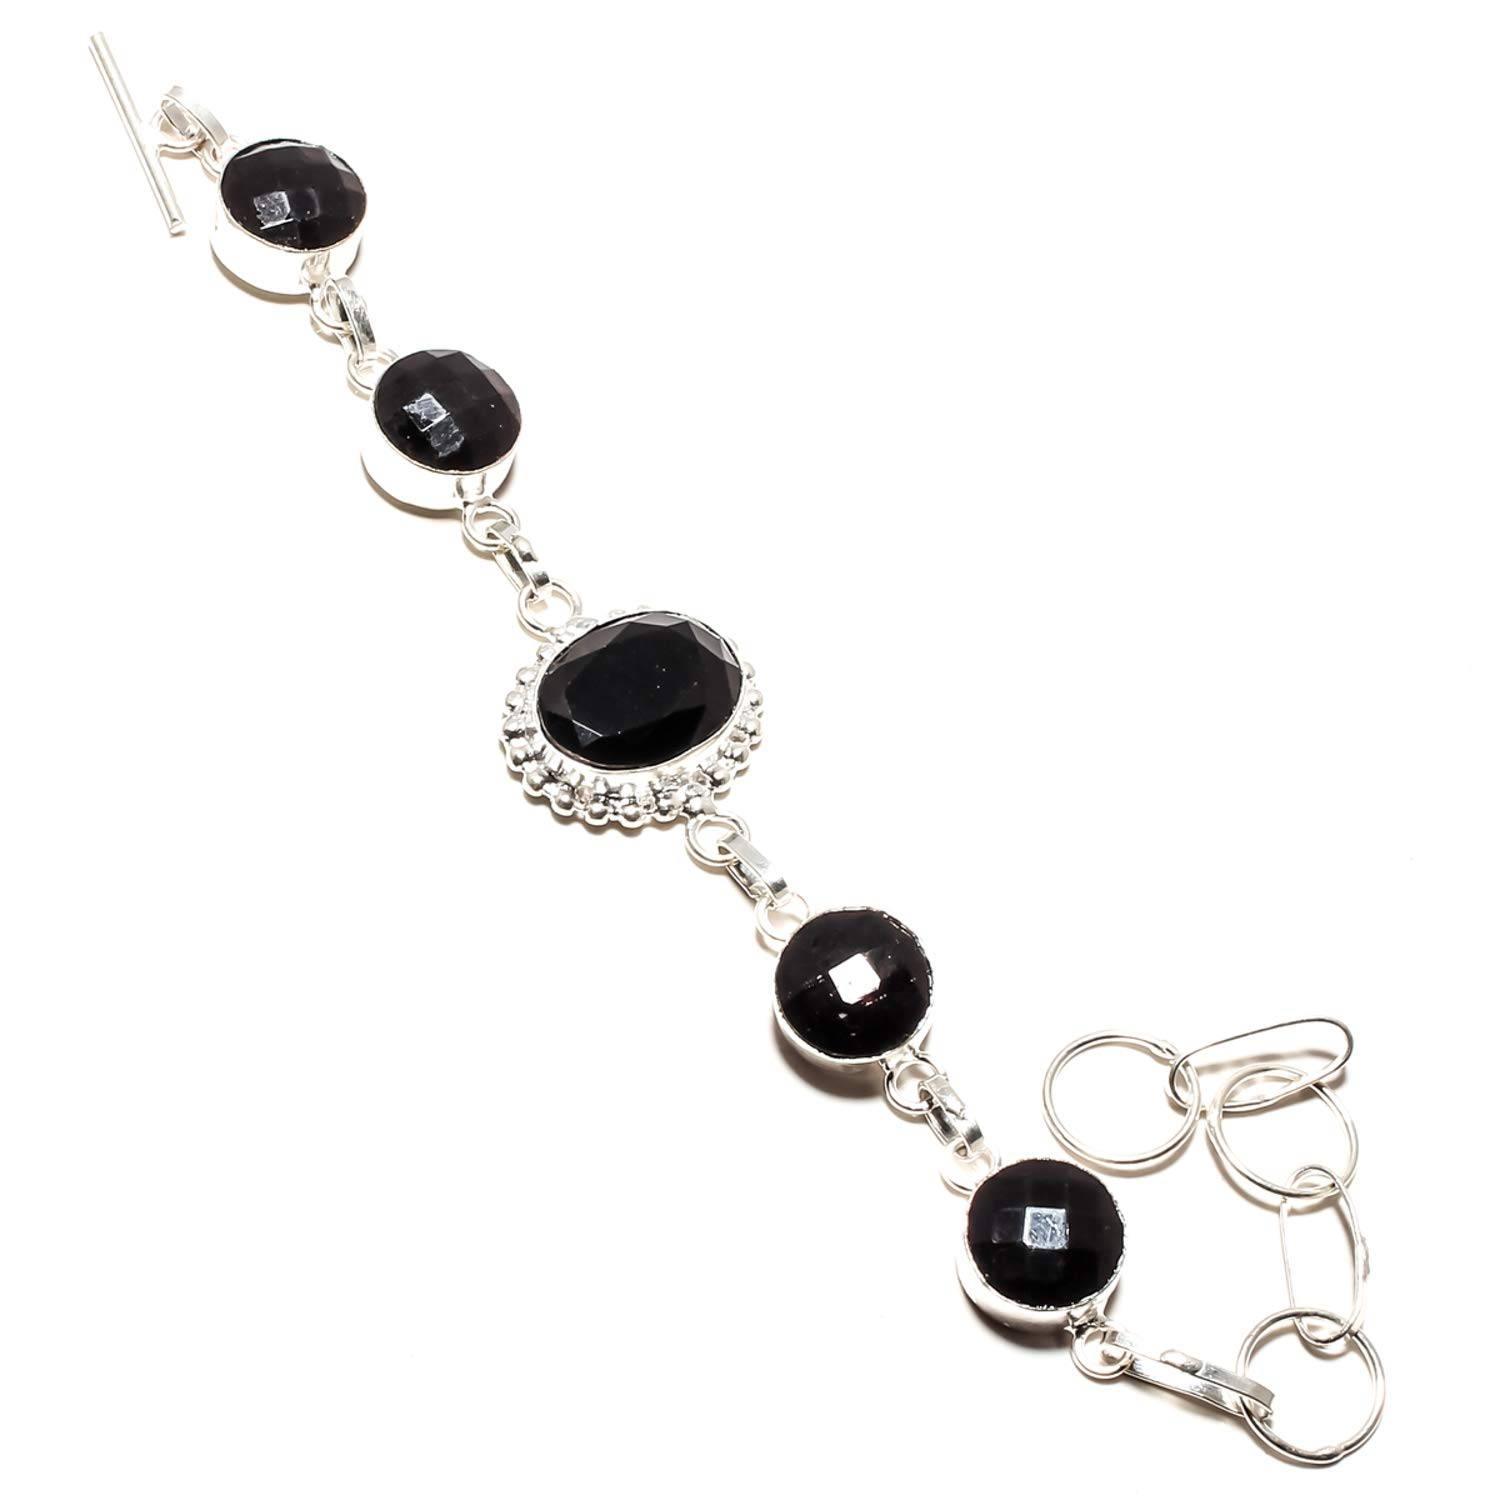 SF-1088 Faceted Black Onyx Gemstone Bracelet Handmade 925 Sterling Silver Plated Jewelry Adjustable and Flexible Length-Link Chain Bracelet